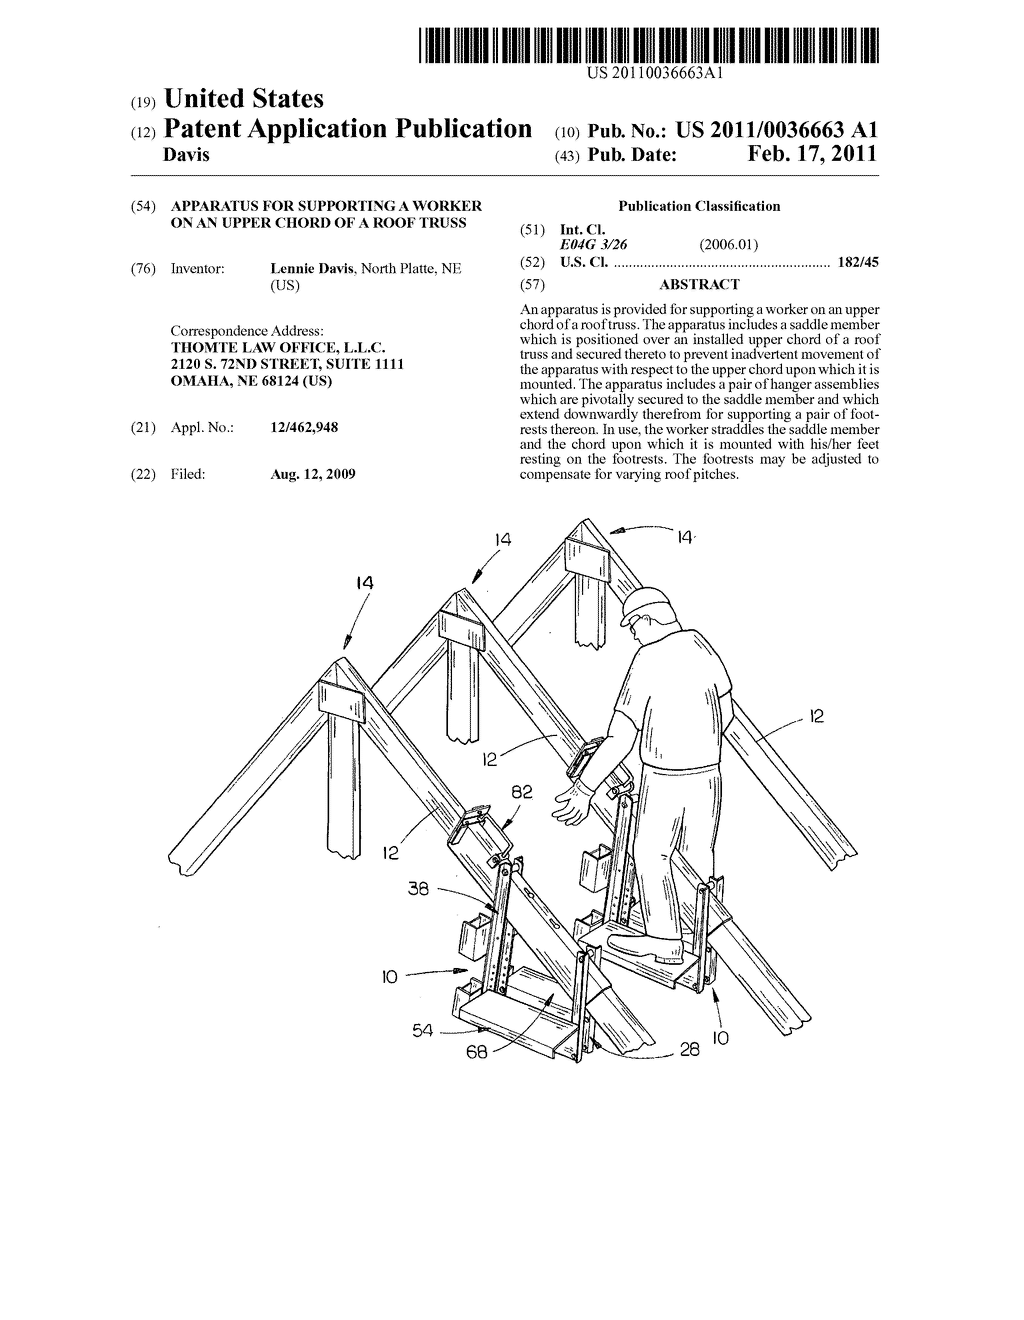 Apparatus for supporting a worker on an upper chord of a roof apparatus for supporting a worker on an upper chord of a roof truss diagram schematic and image 01 hexwebz Choice Image